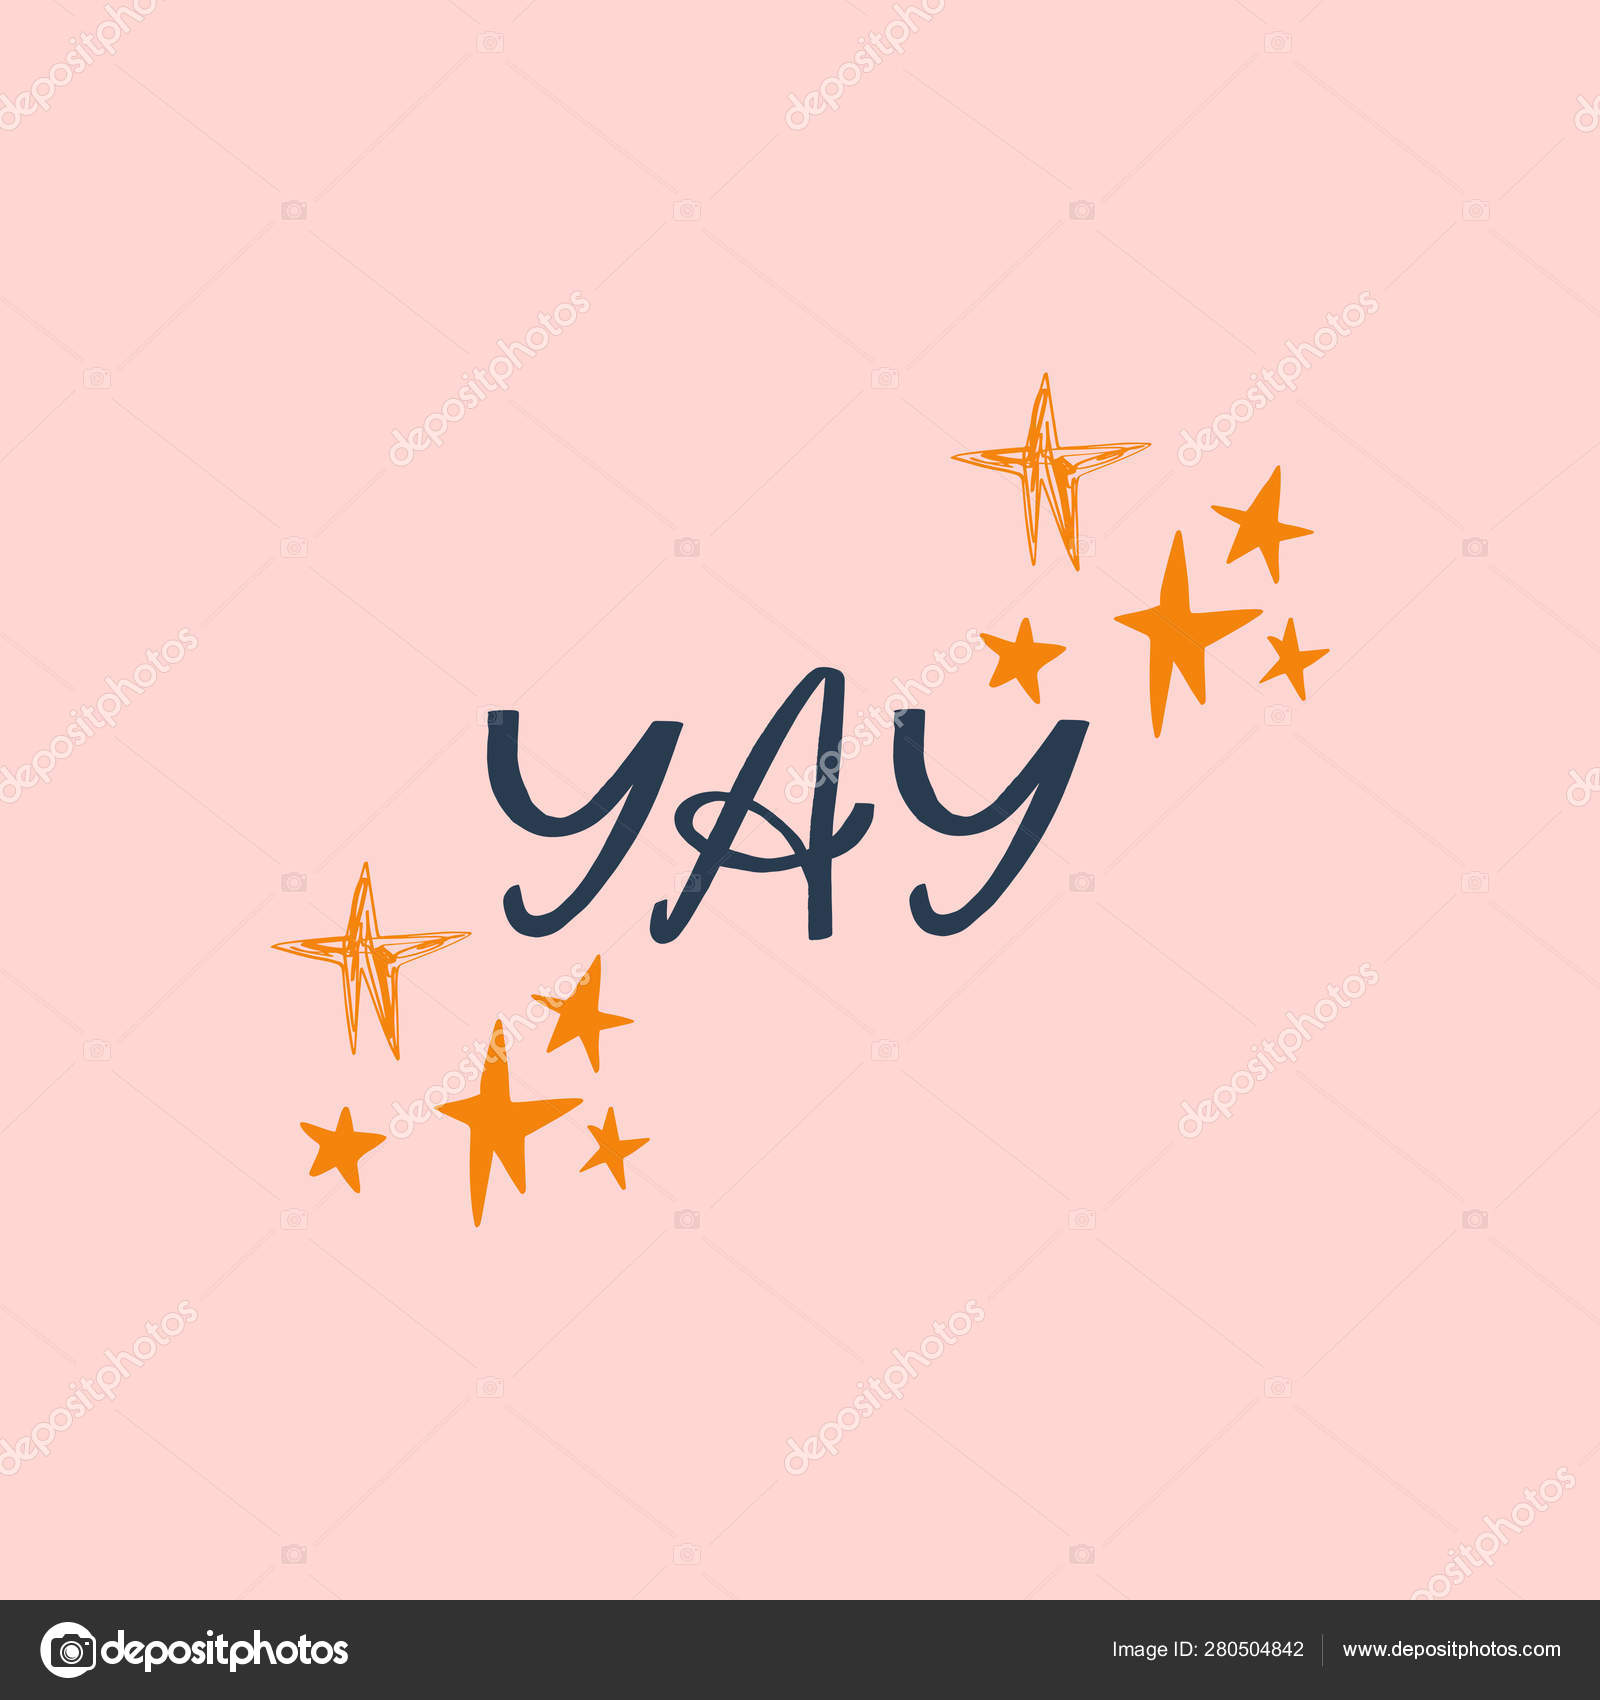 Yay Text Happy Day Hand Drawn Lettering Text Design Elements For Social Media Poster T Shirt Print Leaflet Vector Illustration Stock Vector C Knstart 280504842 4 alternative and related products to yaytext! https depositphotos com 280504842 stock illustration yay text happy day hand html